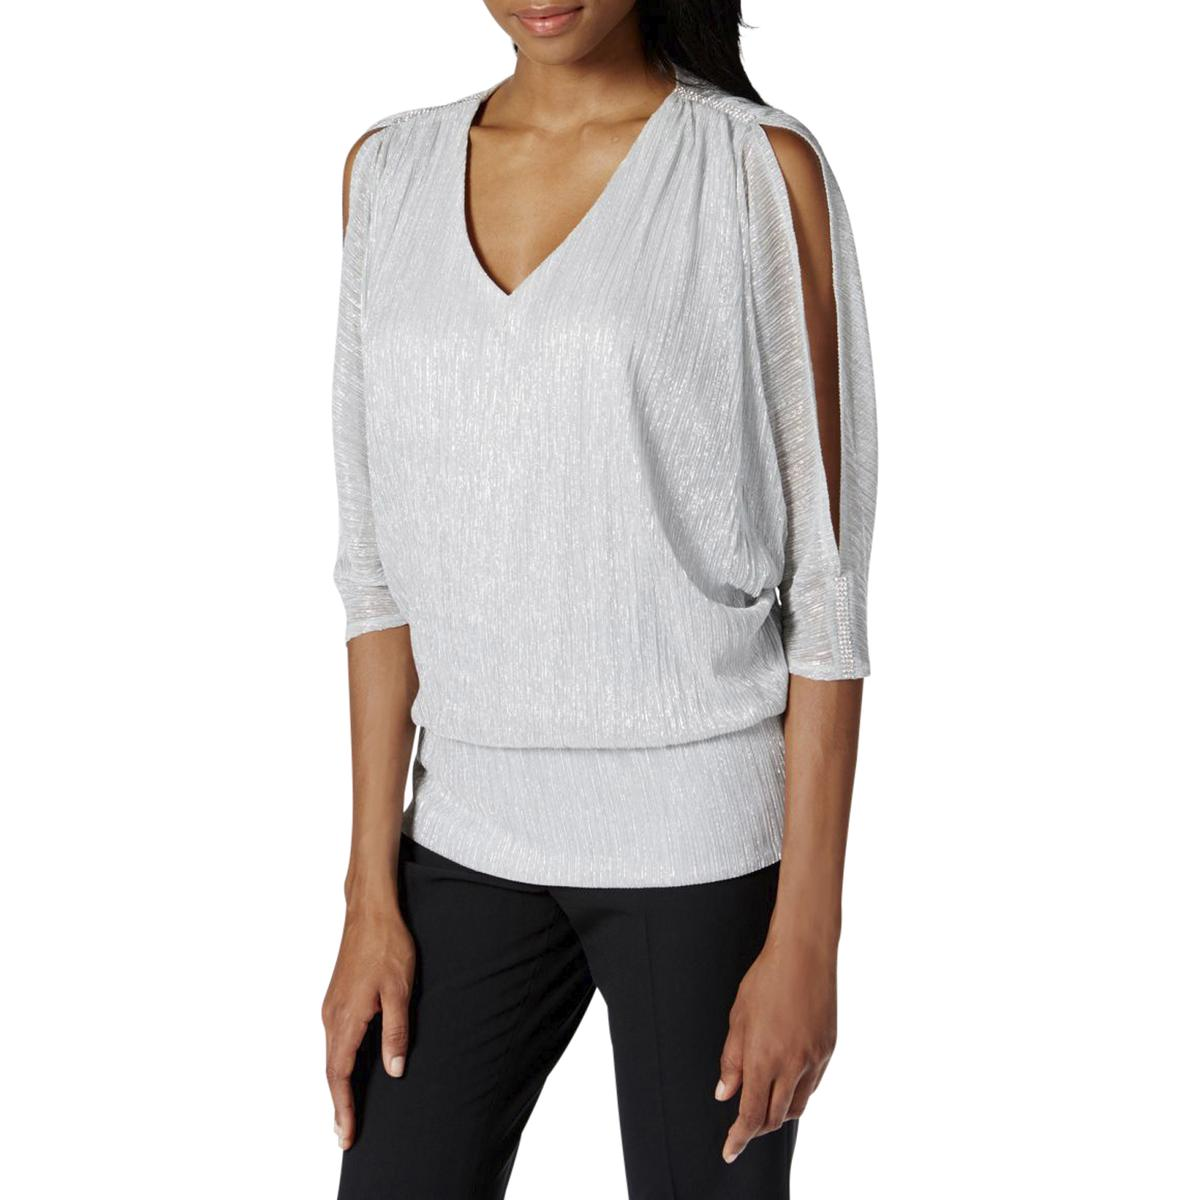 99346da953d46 Details about MSK Womens Silver Metallic Slit Sleeves Party Blouse Top M  BHFO 3547